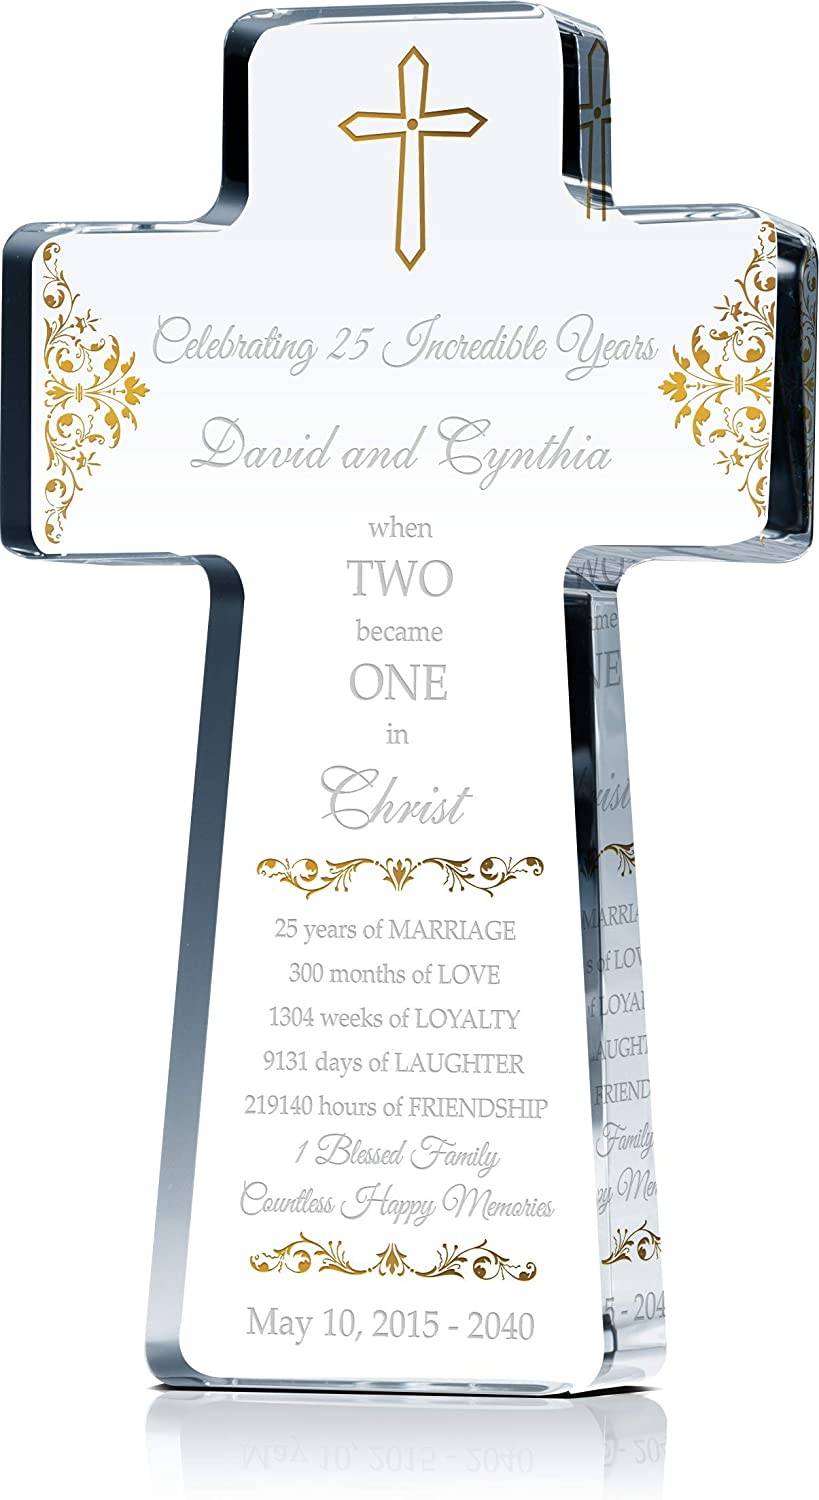 Amazon Com Personalized Christian Gift For 25 Year Wedding Anniversary Crystal Standing Cross Customized With Couple Names And Religious Anniversary Wishes In Traditional Silver Anniversary Color S 8 Home Kitchen